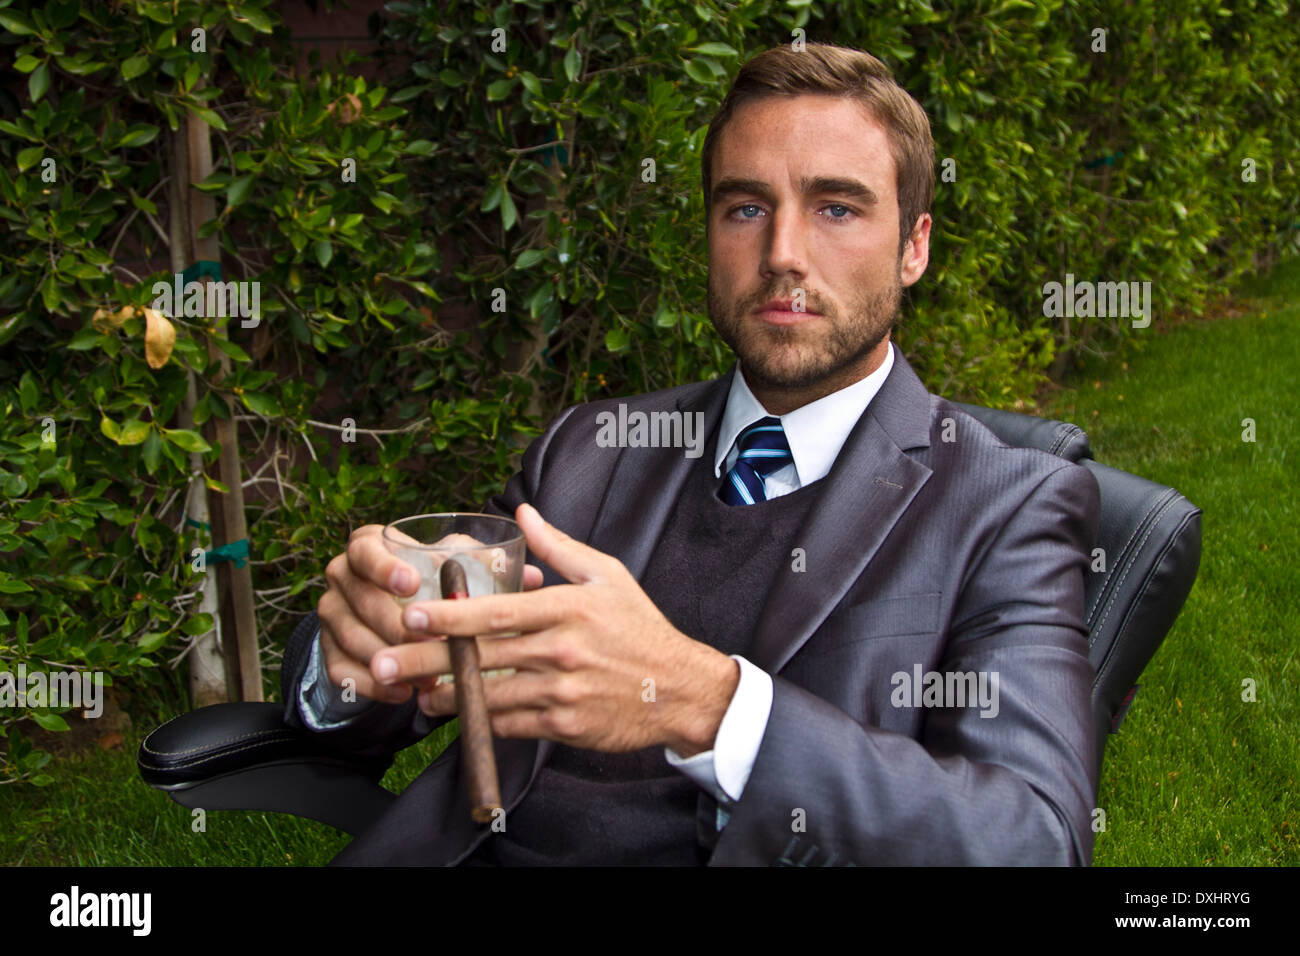 Business man outside in office chair outside - Stock Image